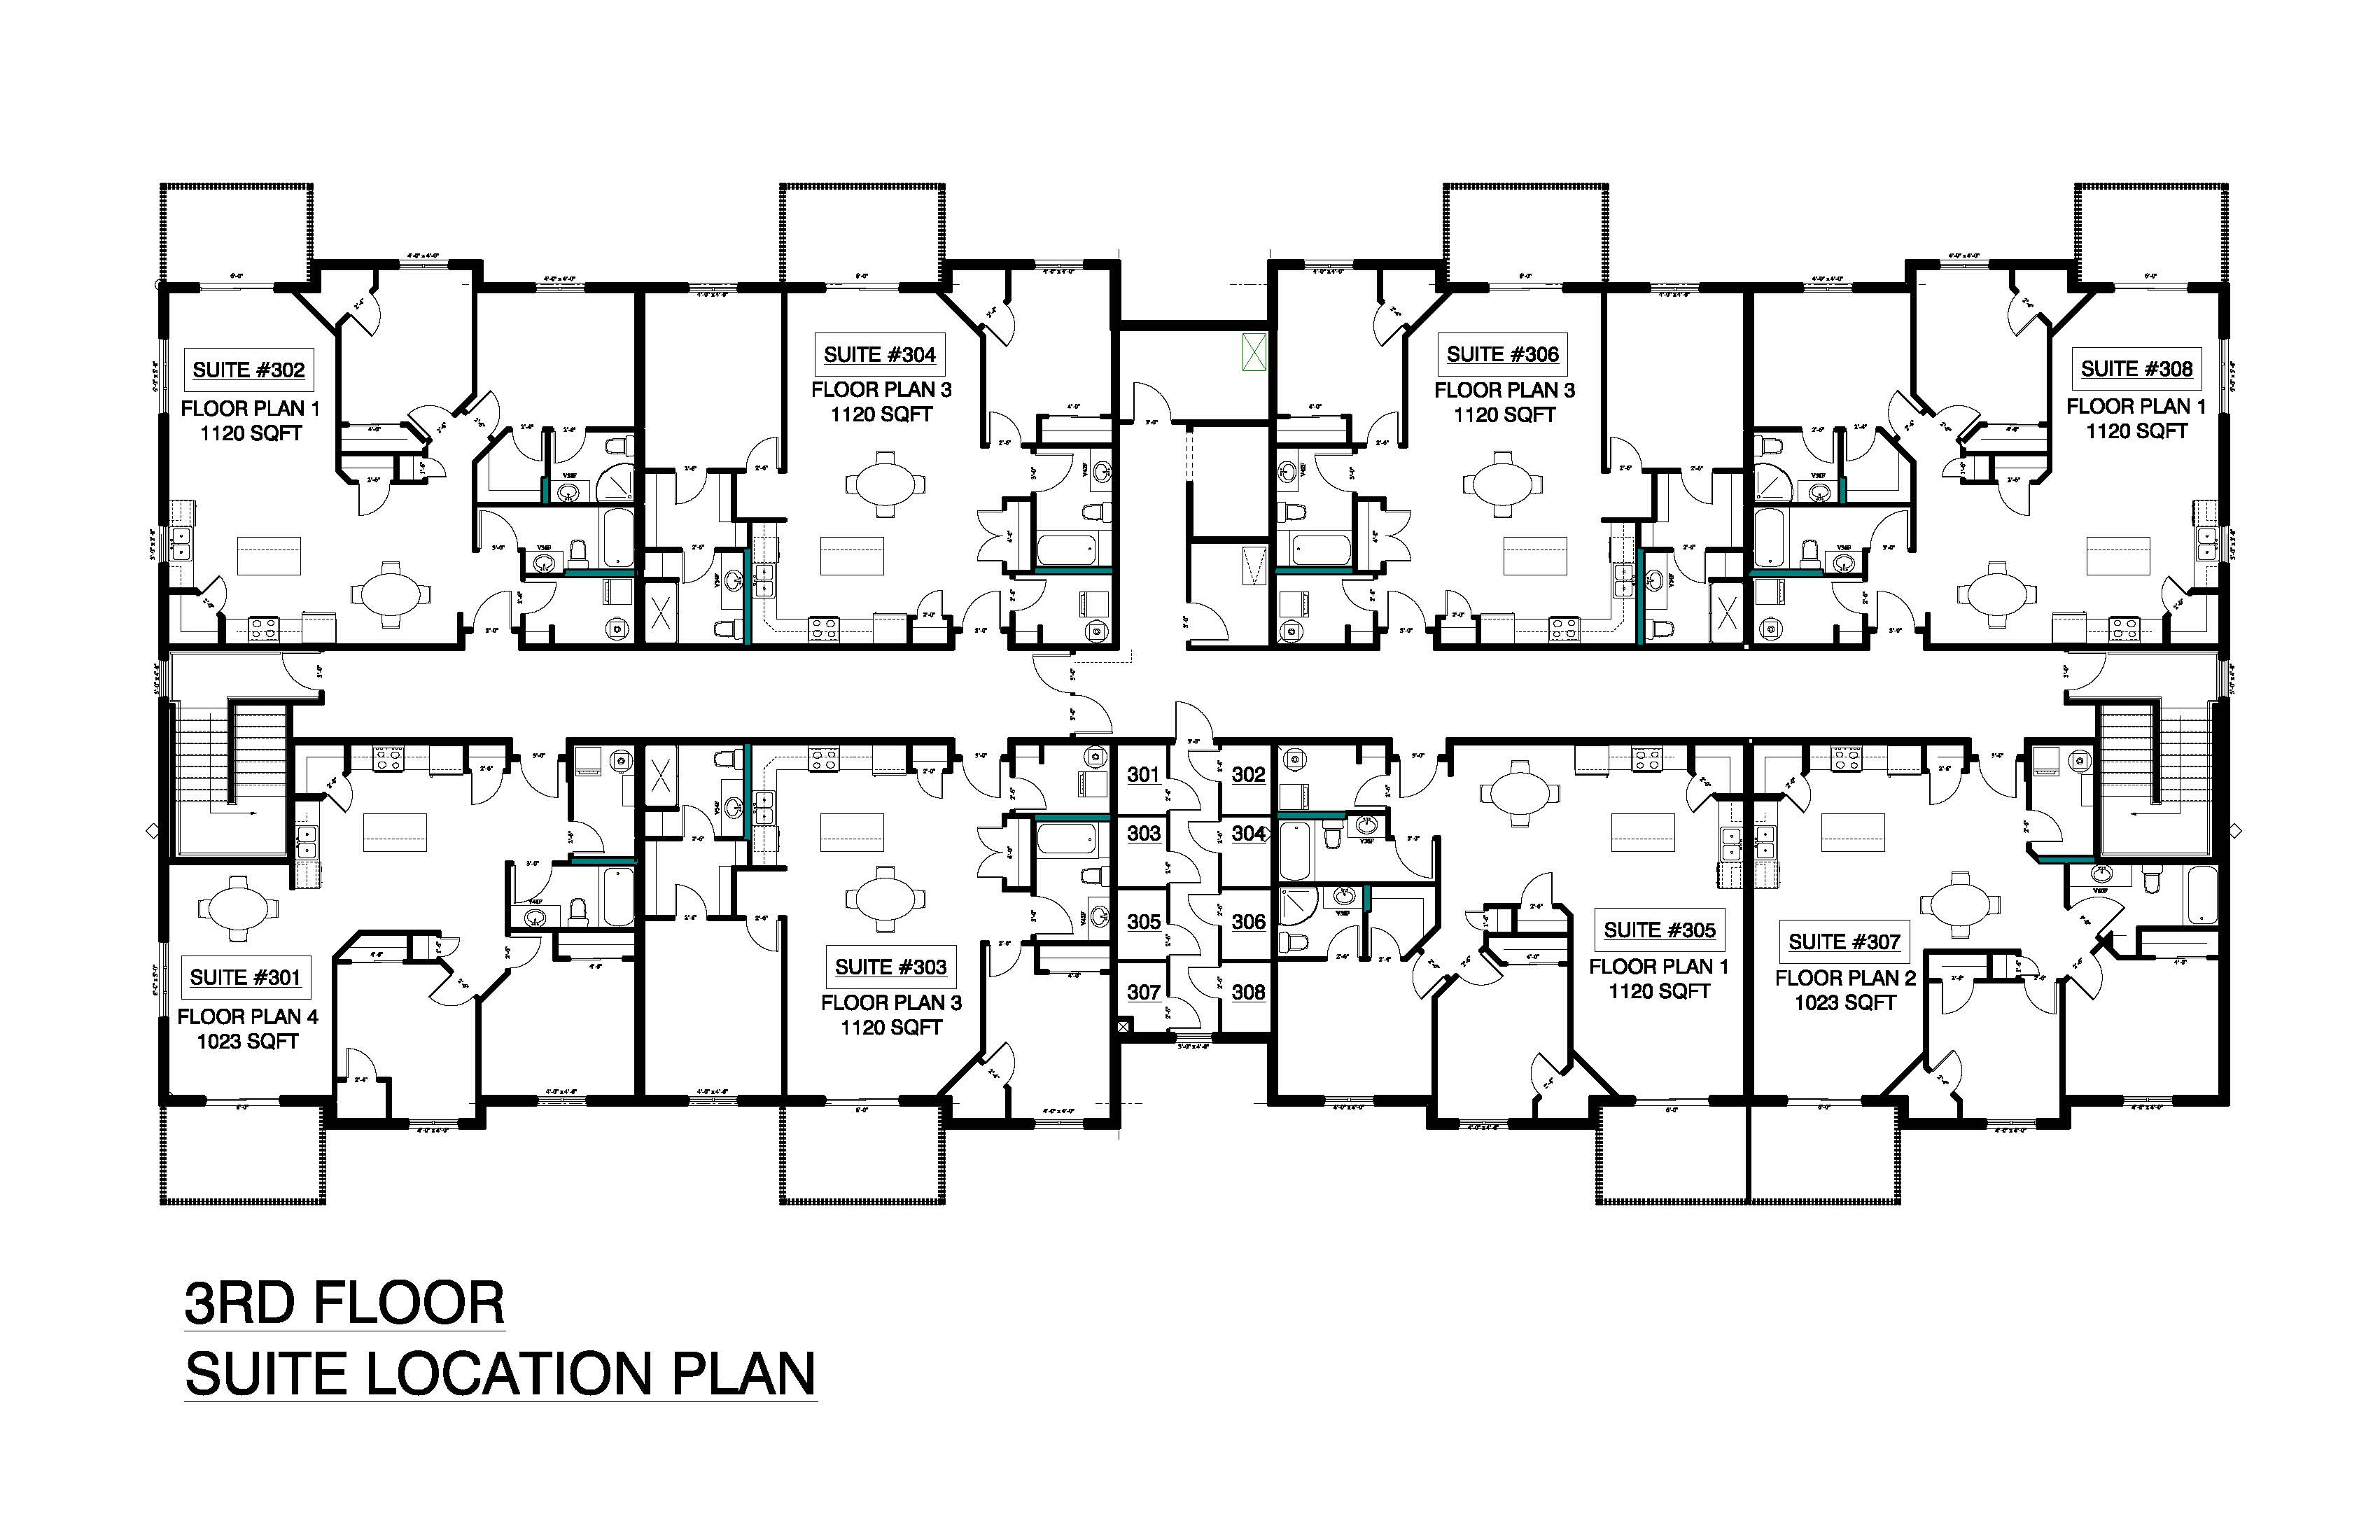 3rd Floor Suite Location Plan